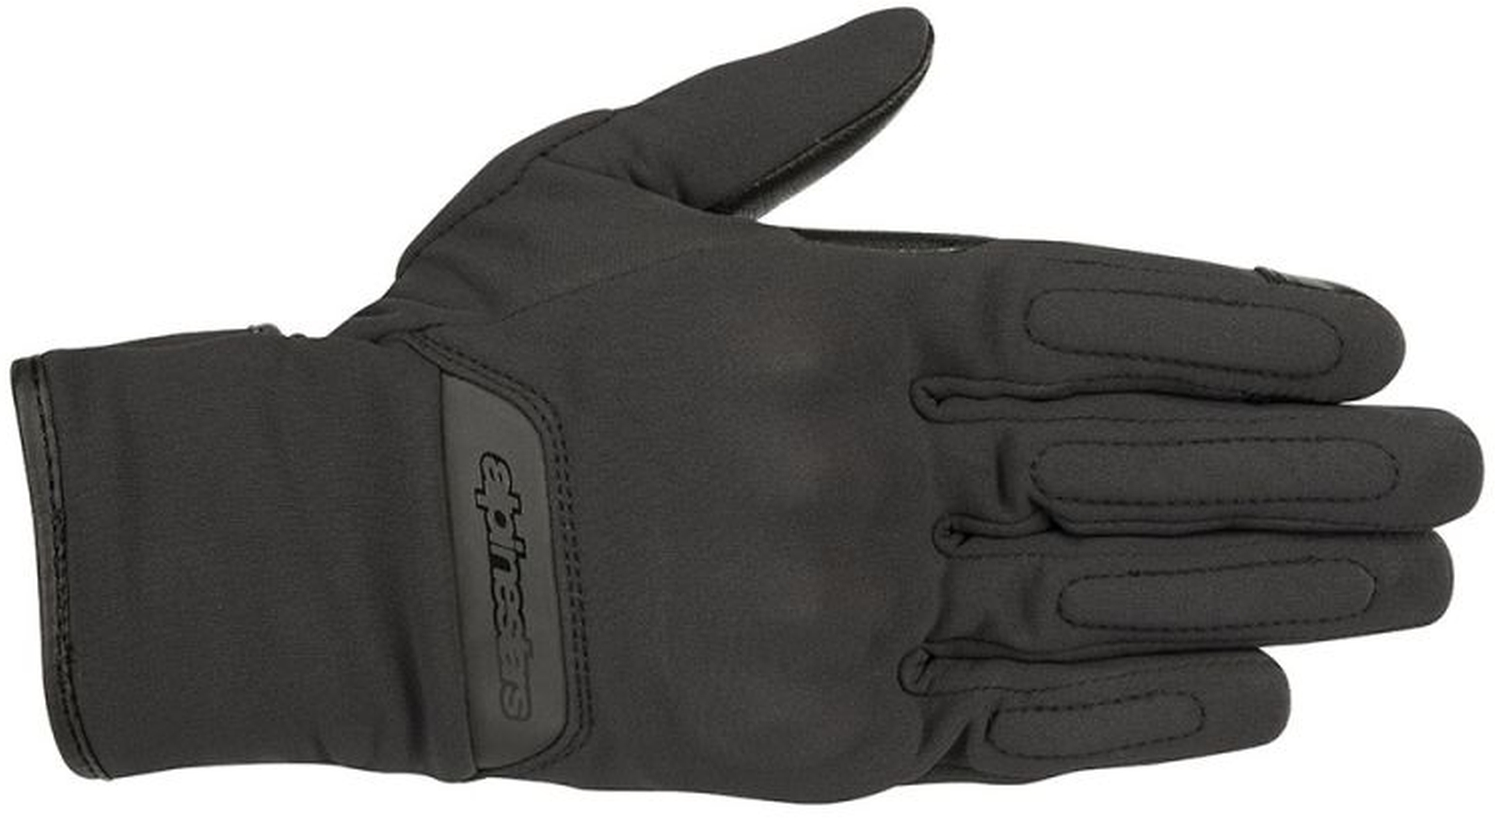 C-1 V2 GORE WINDSTOPPER WOMEN'S GLOVES